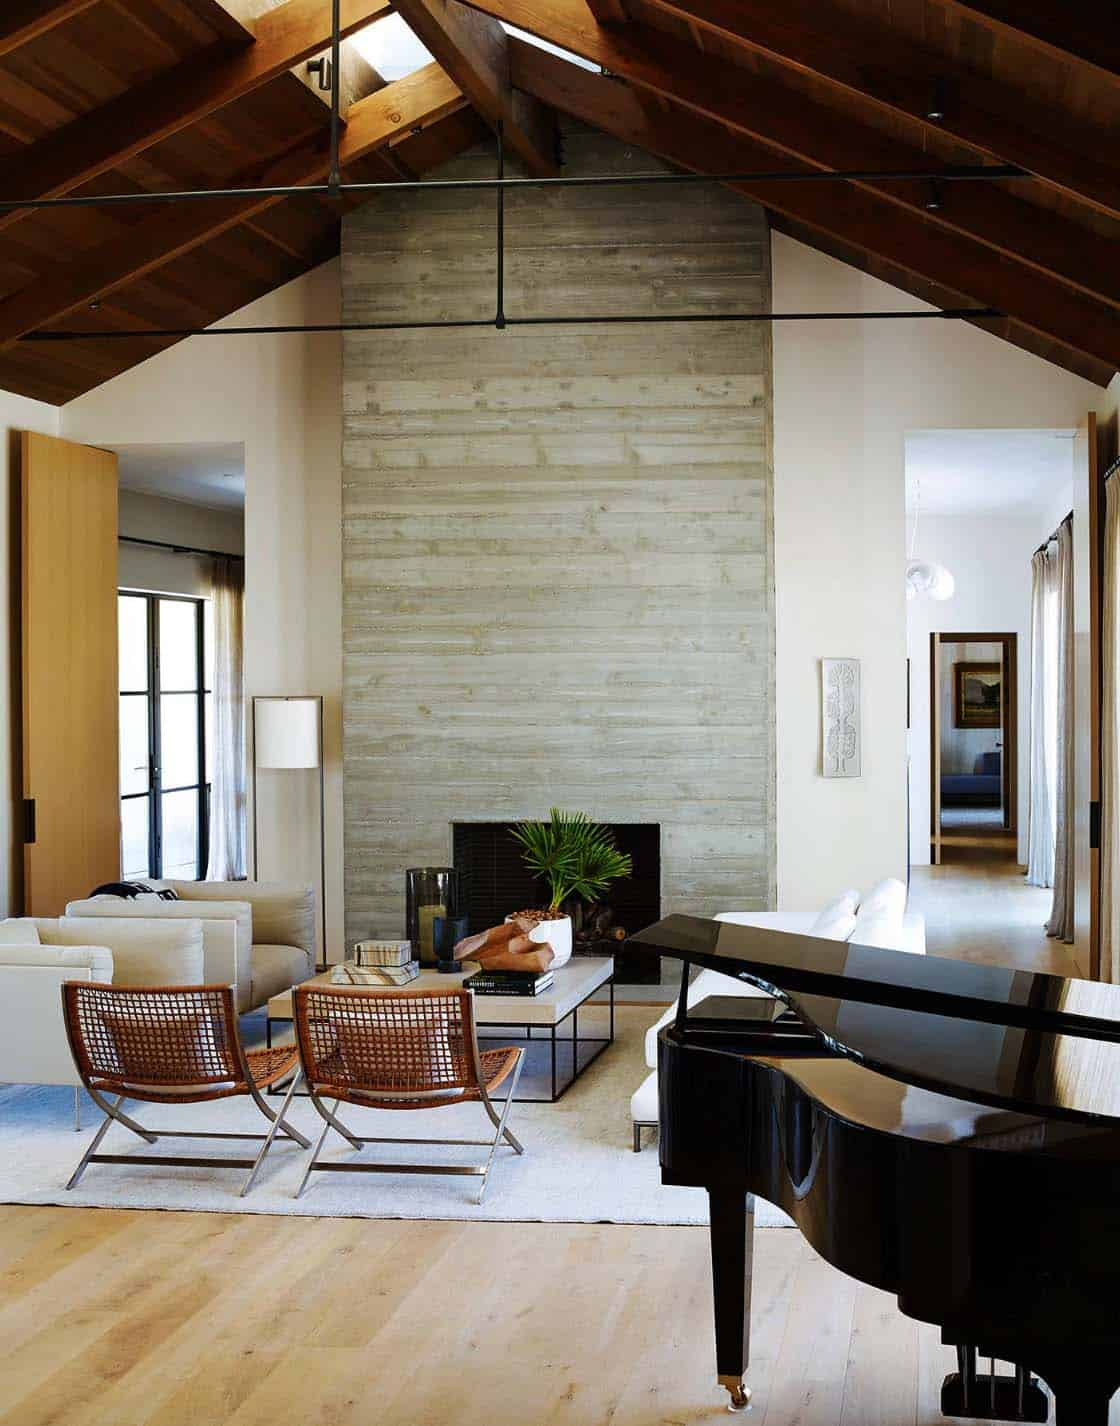 Contemporary Courtyard House-Butler Armsden Architects-04-1 Kindesign